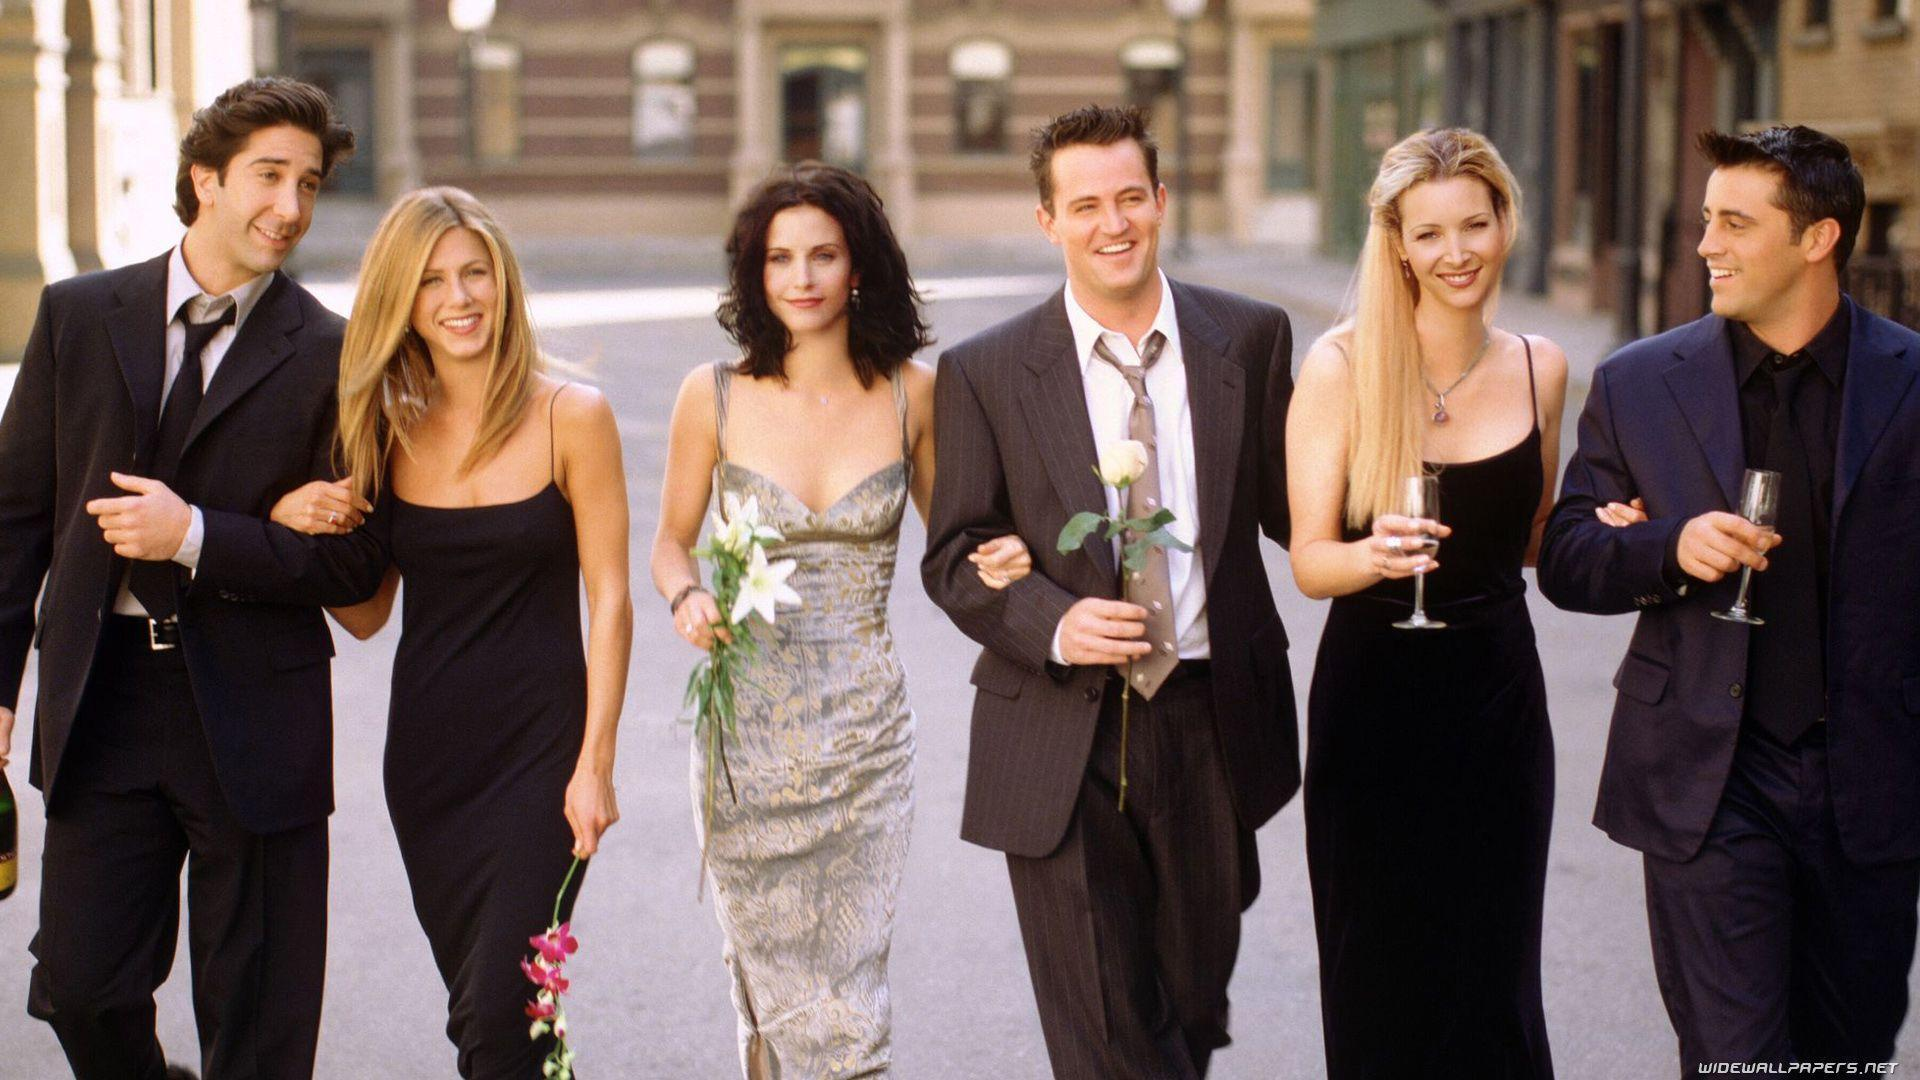 Image For > Friends Tv Series Cover Photo